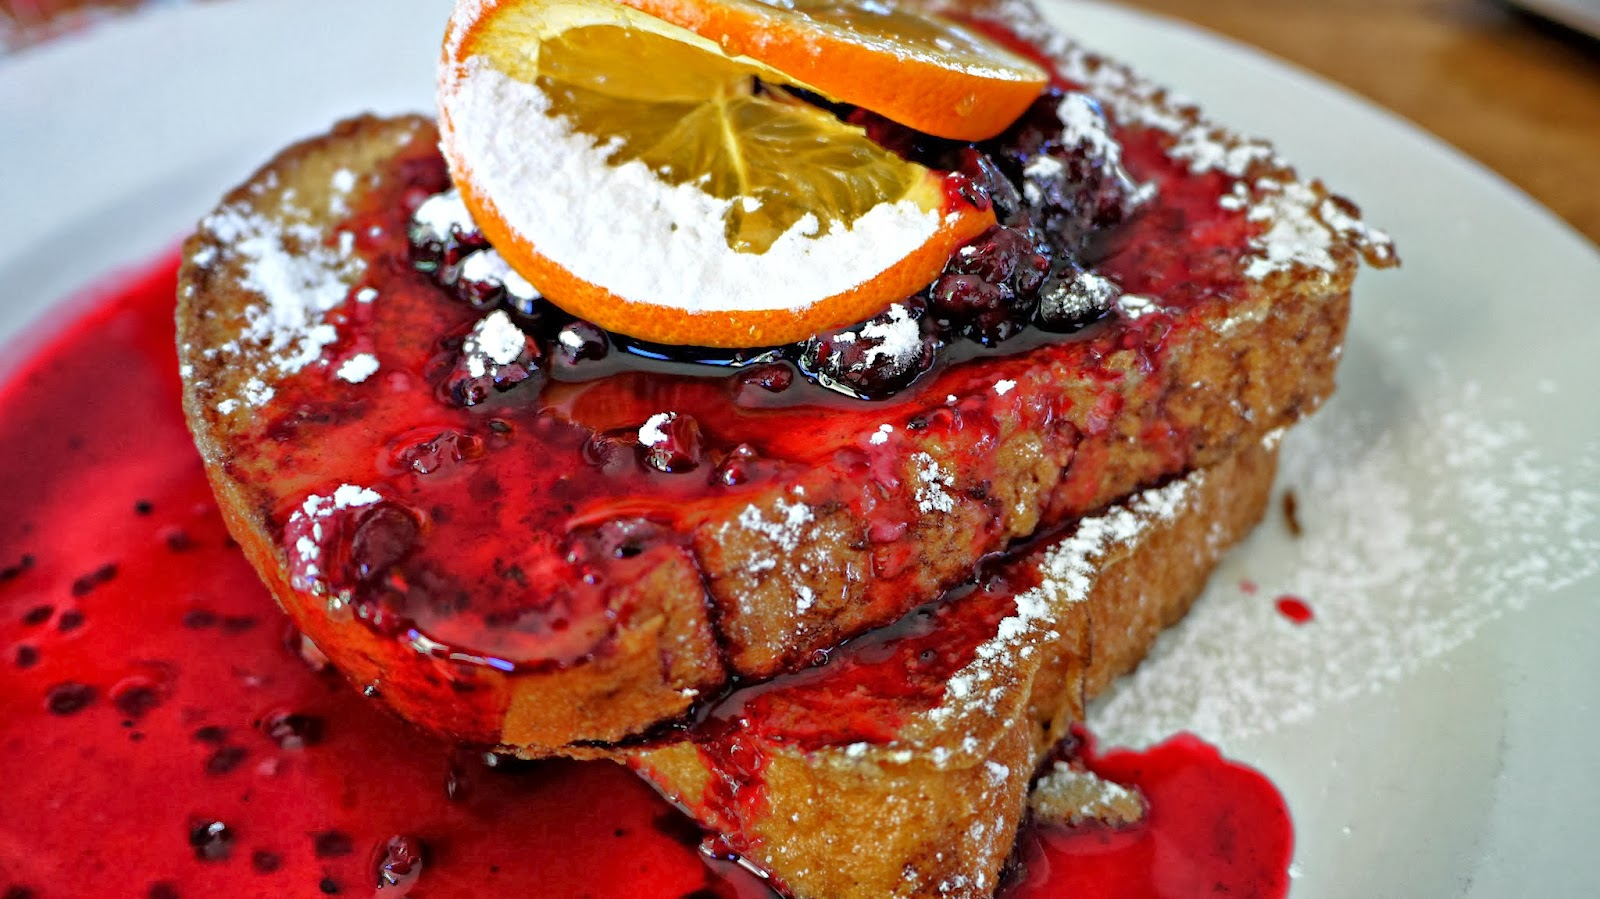 French Toast at The Kiosk on Floreat Beach